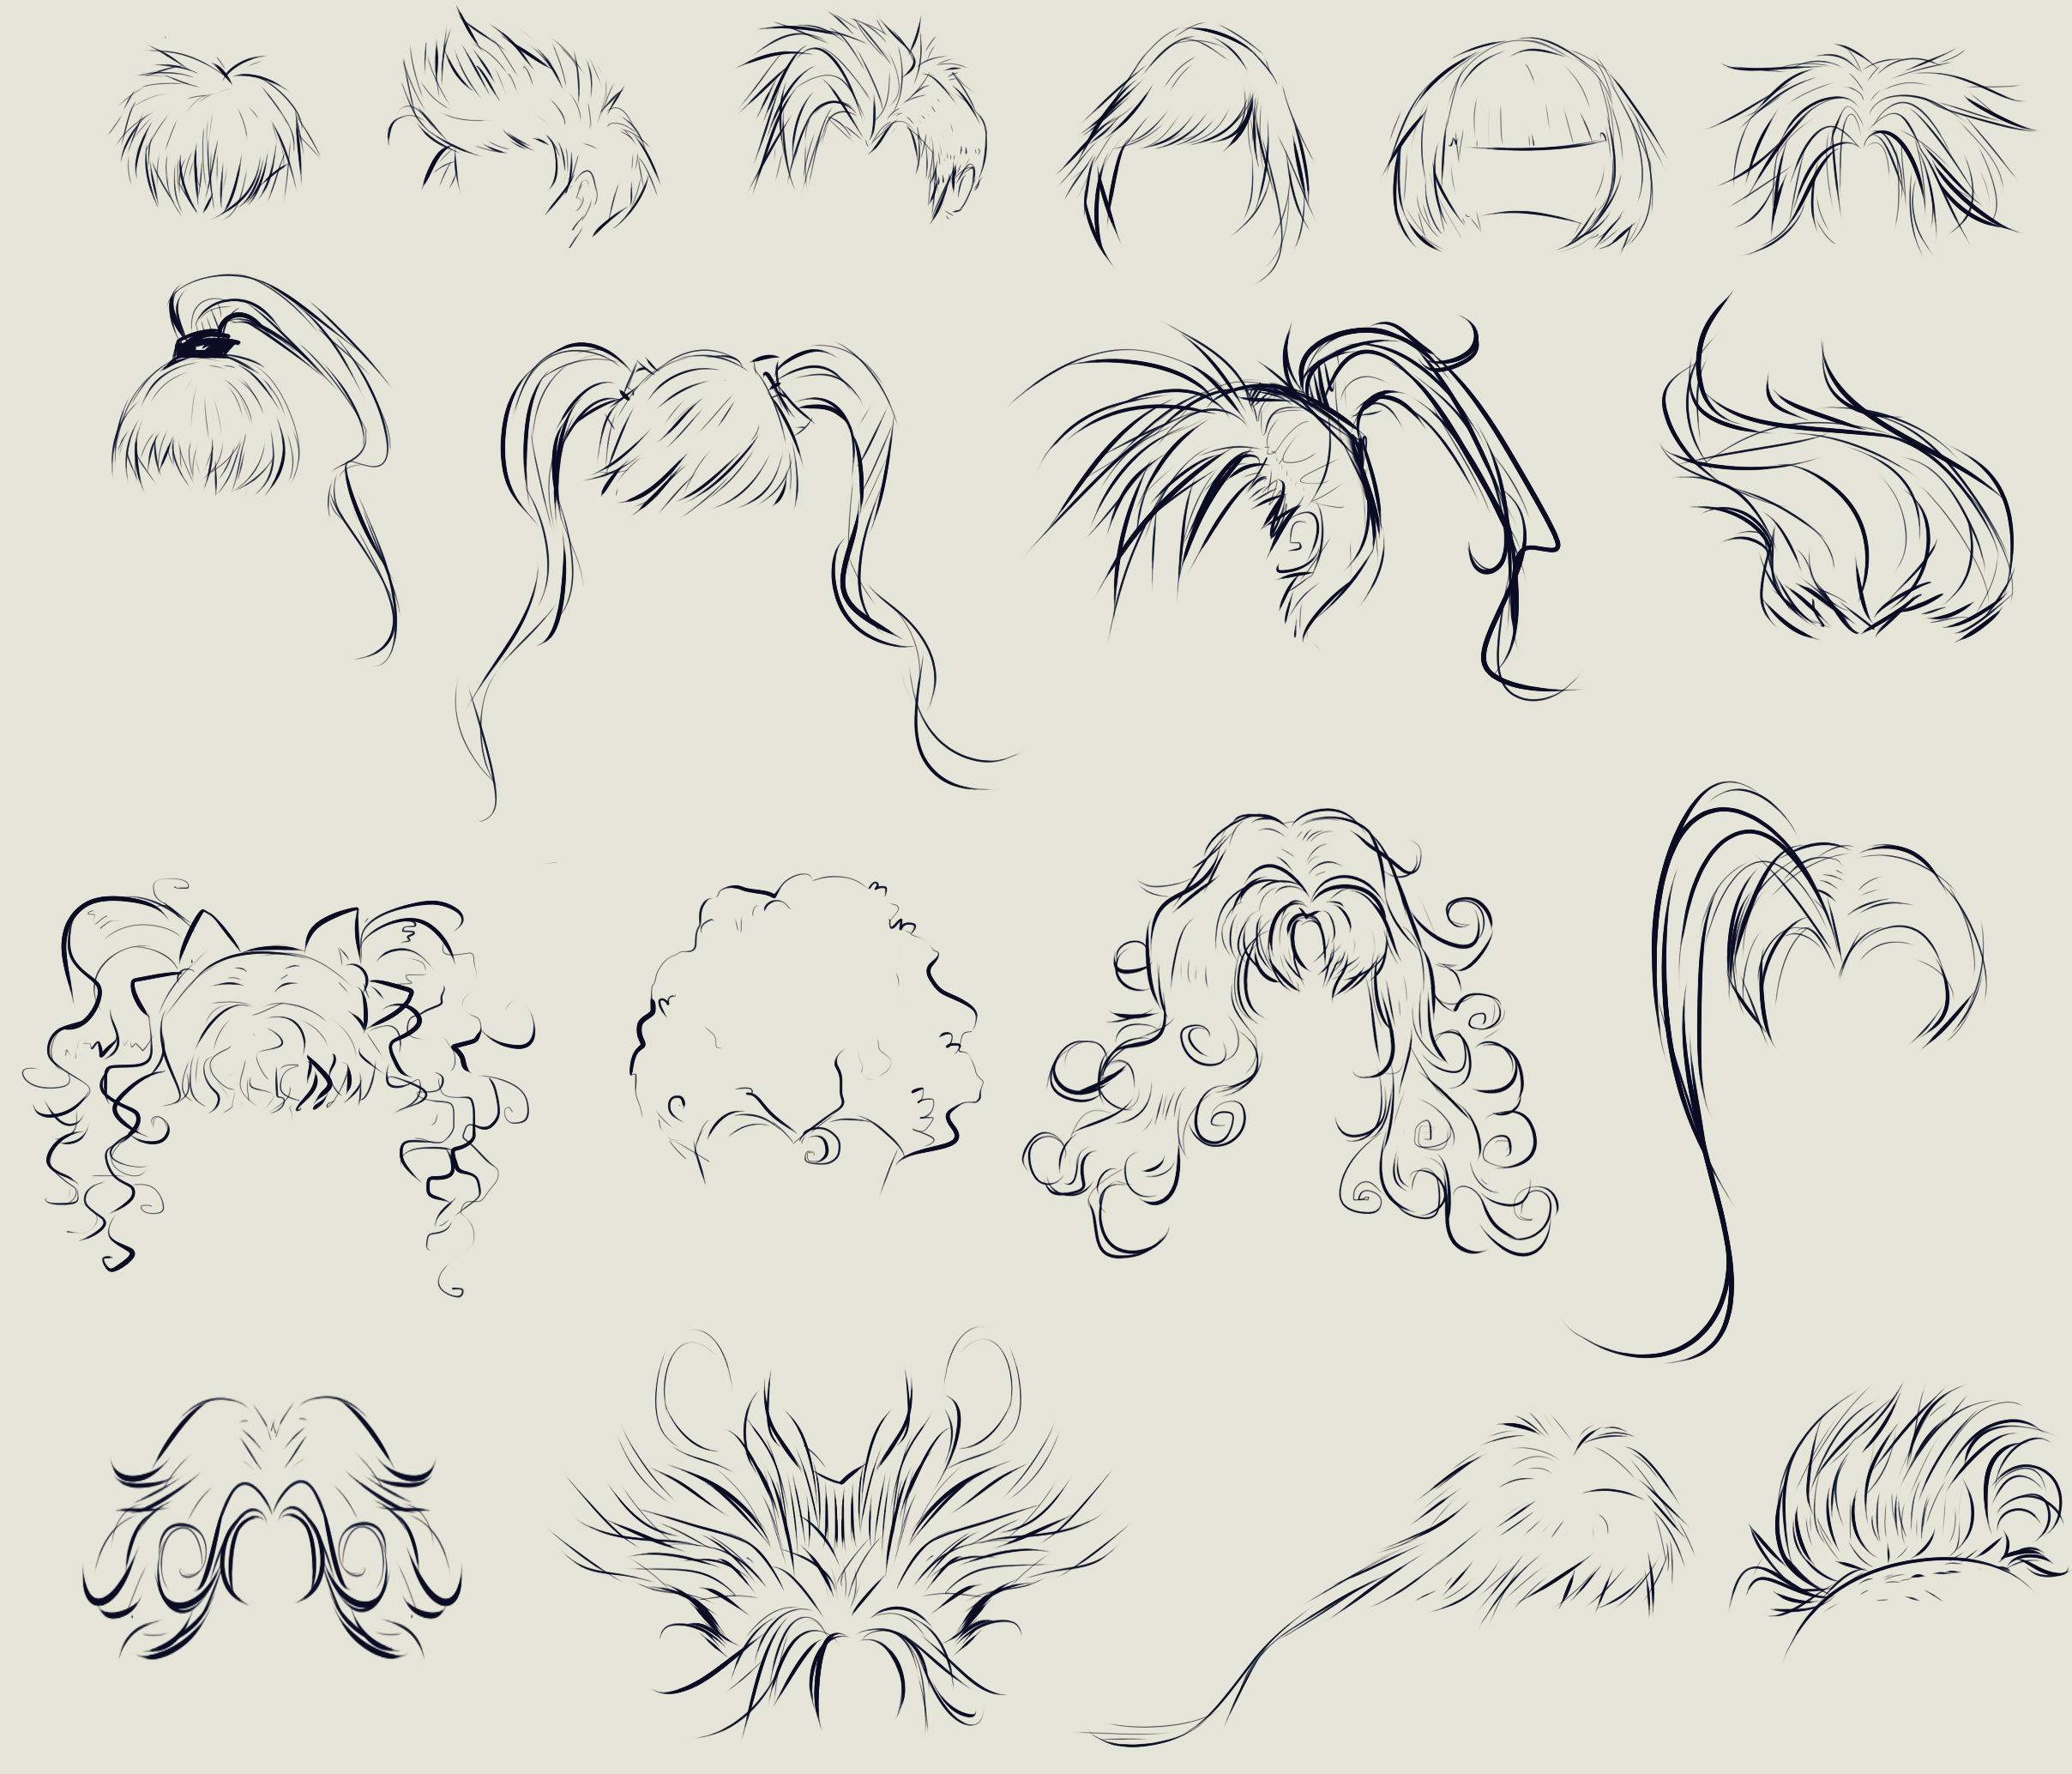 anime hair reference by ryky on DeviantArt